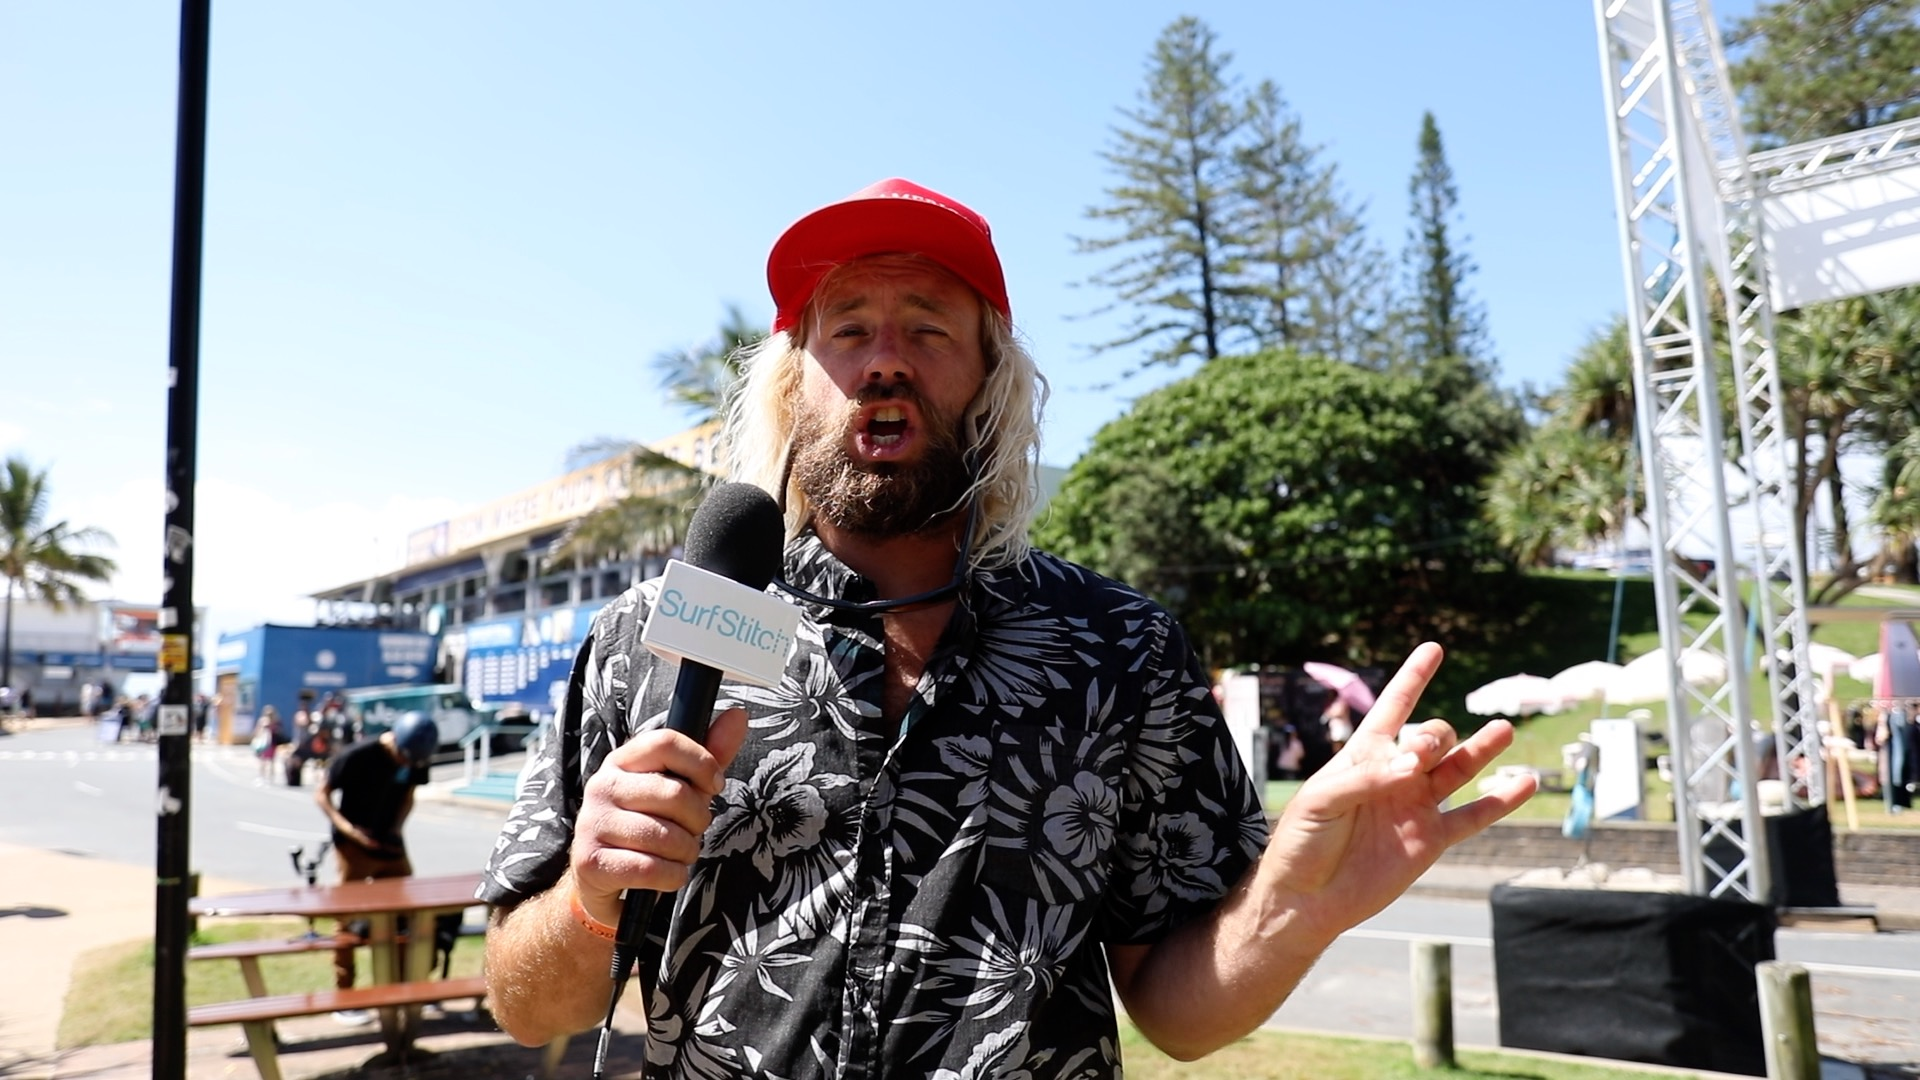 Go VIP: Tyler Allen, the Quiksilver Pro and the biggest names in surfing